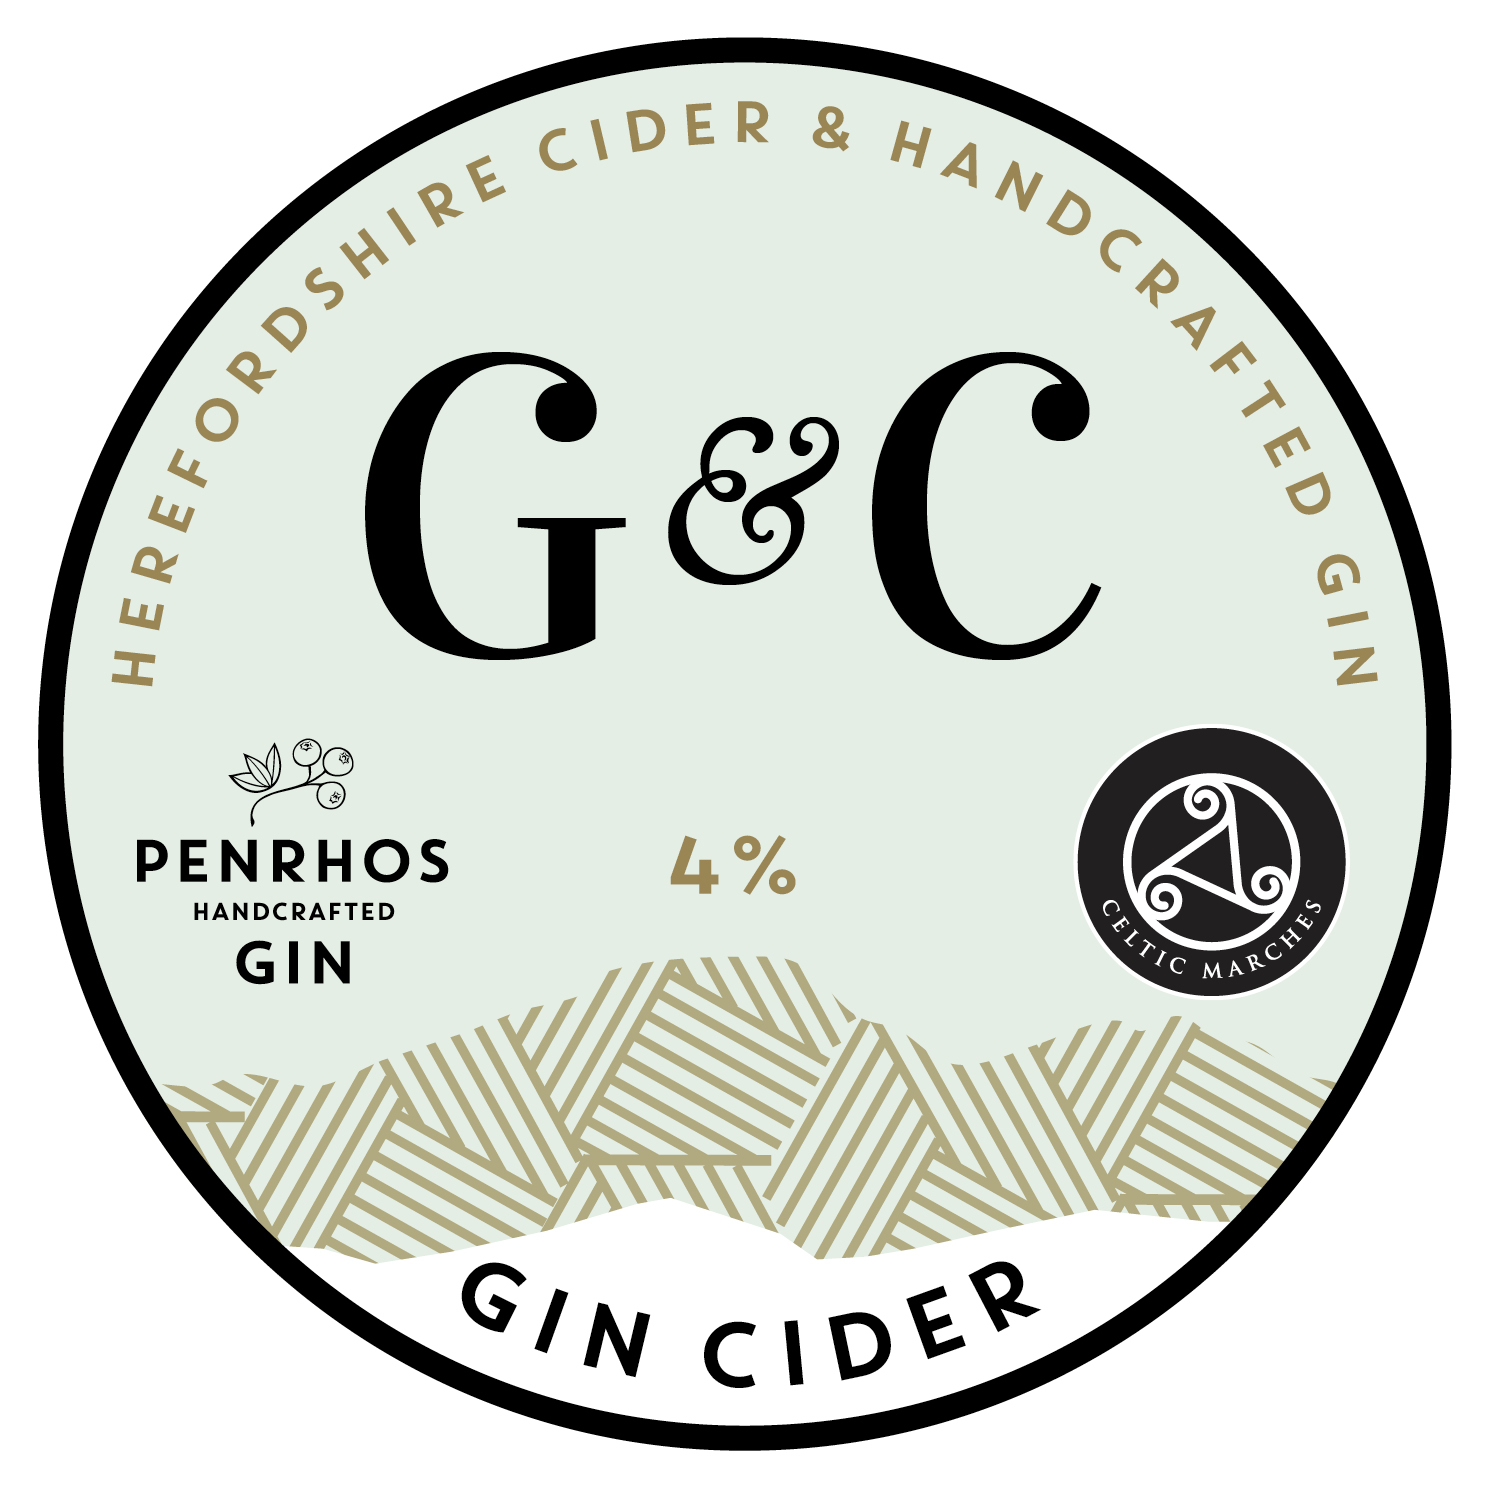 G&C, a Herefordshire twist on a classic drink